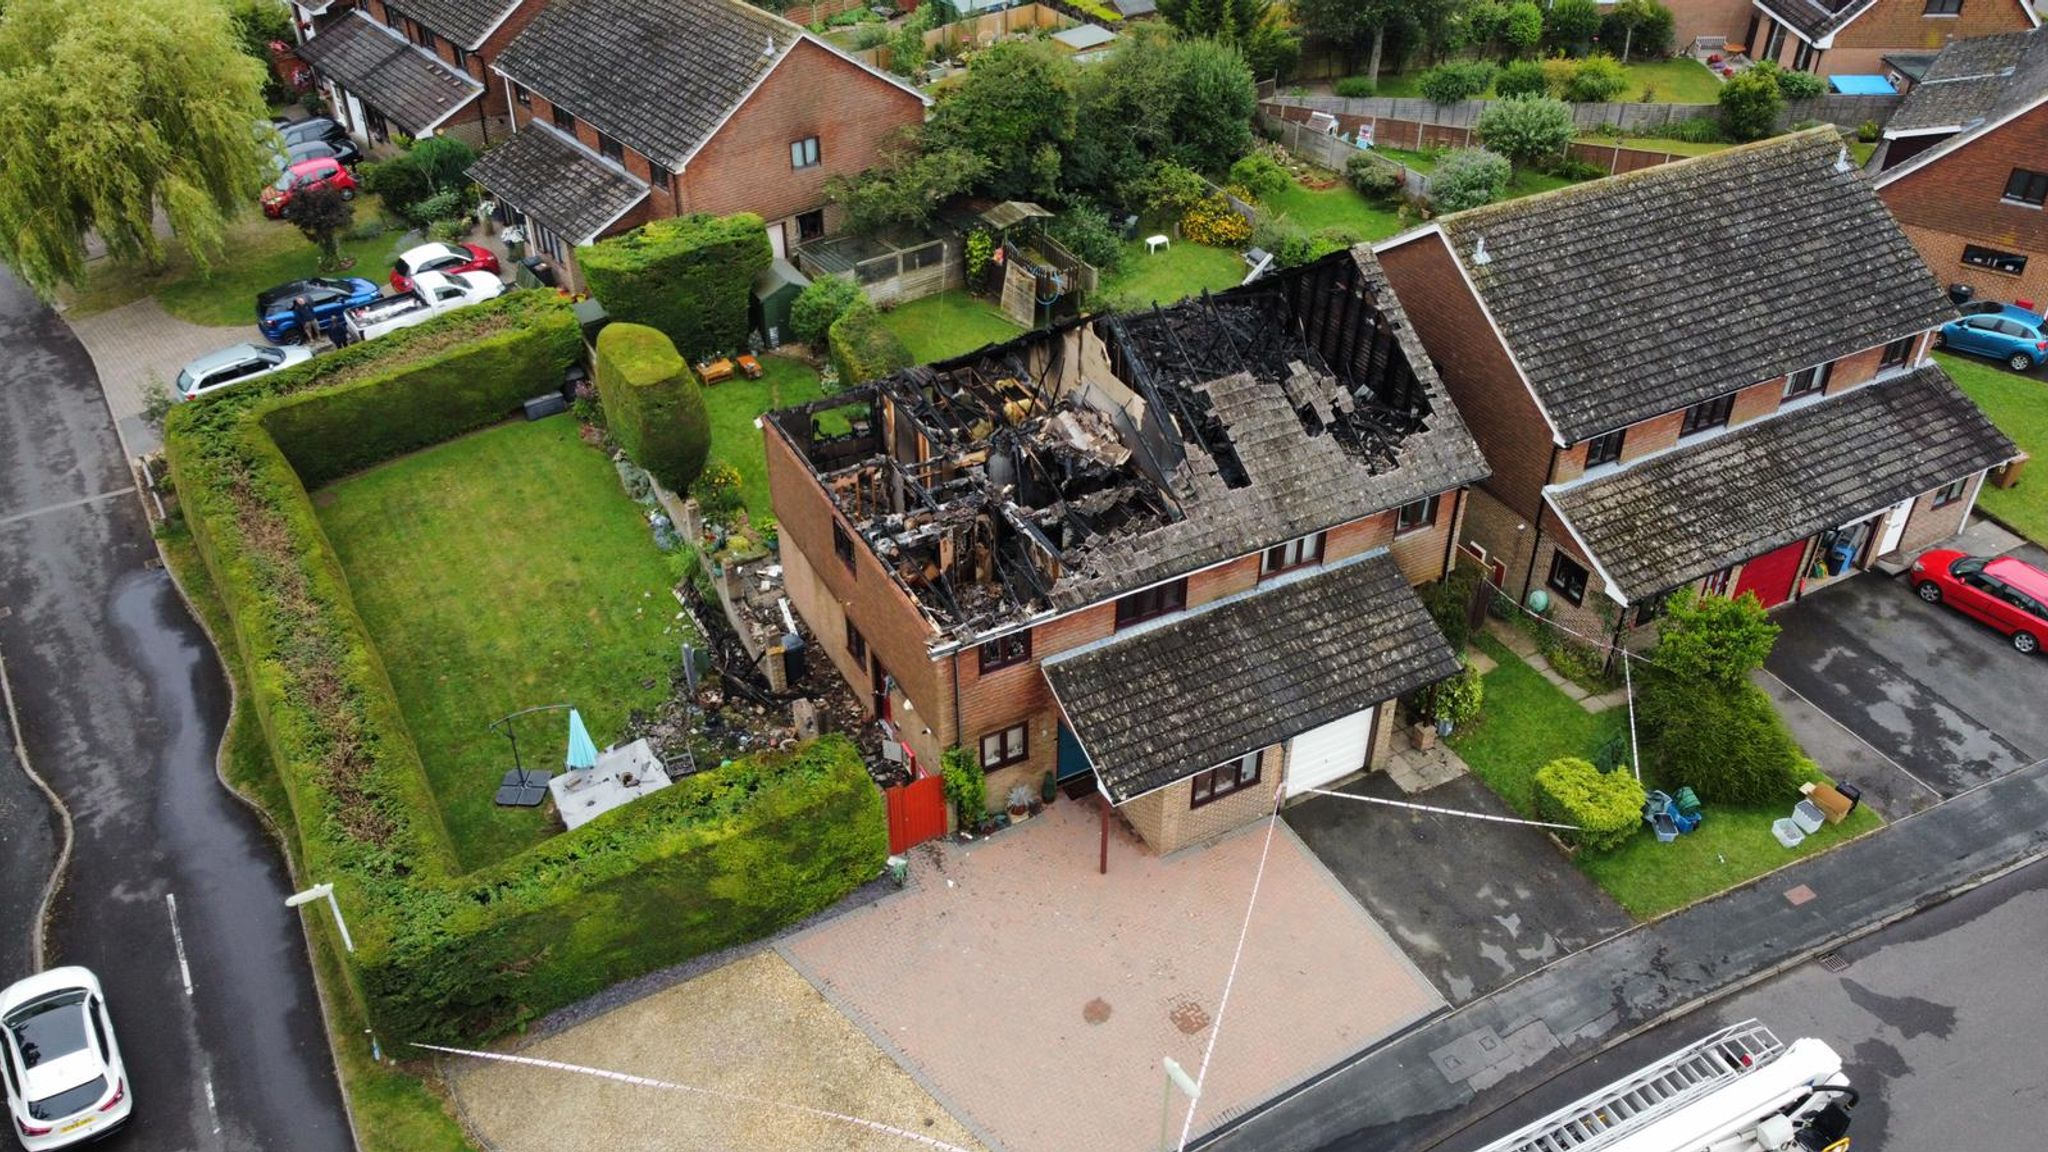 Hampshire: House roofs destroyed after being struck by lightning in Andover  amid thunderstorm warnings | UK News | Sky News